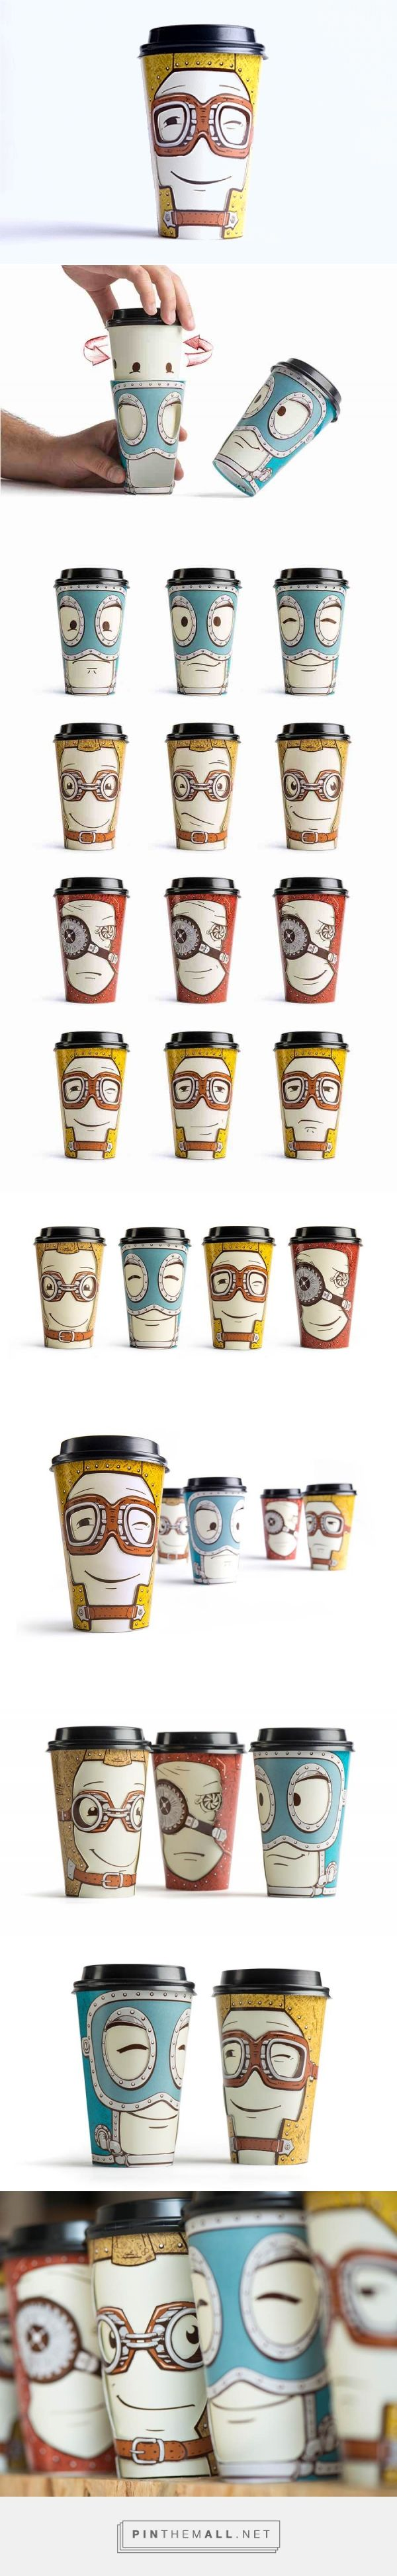 Super Creative Coffee Cup Moods  | Abduzeedo Design Inspiration - created via https://pinthemall.net